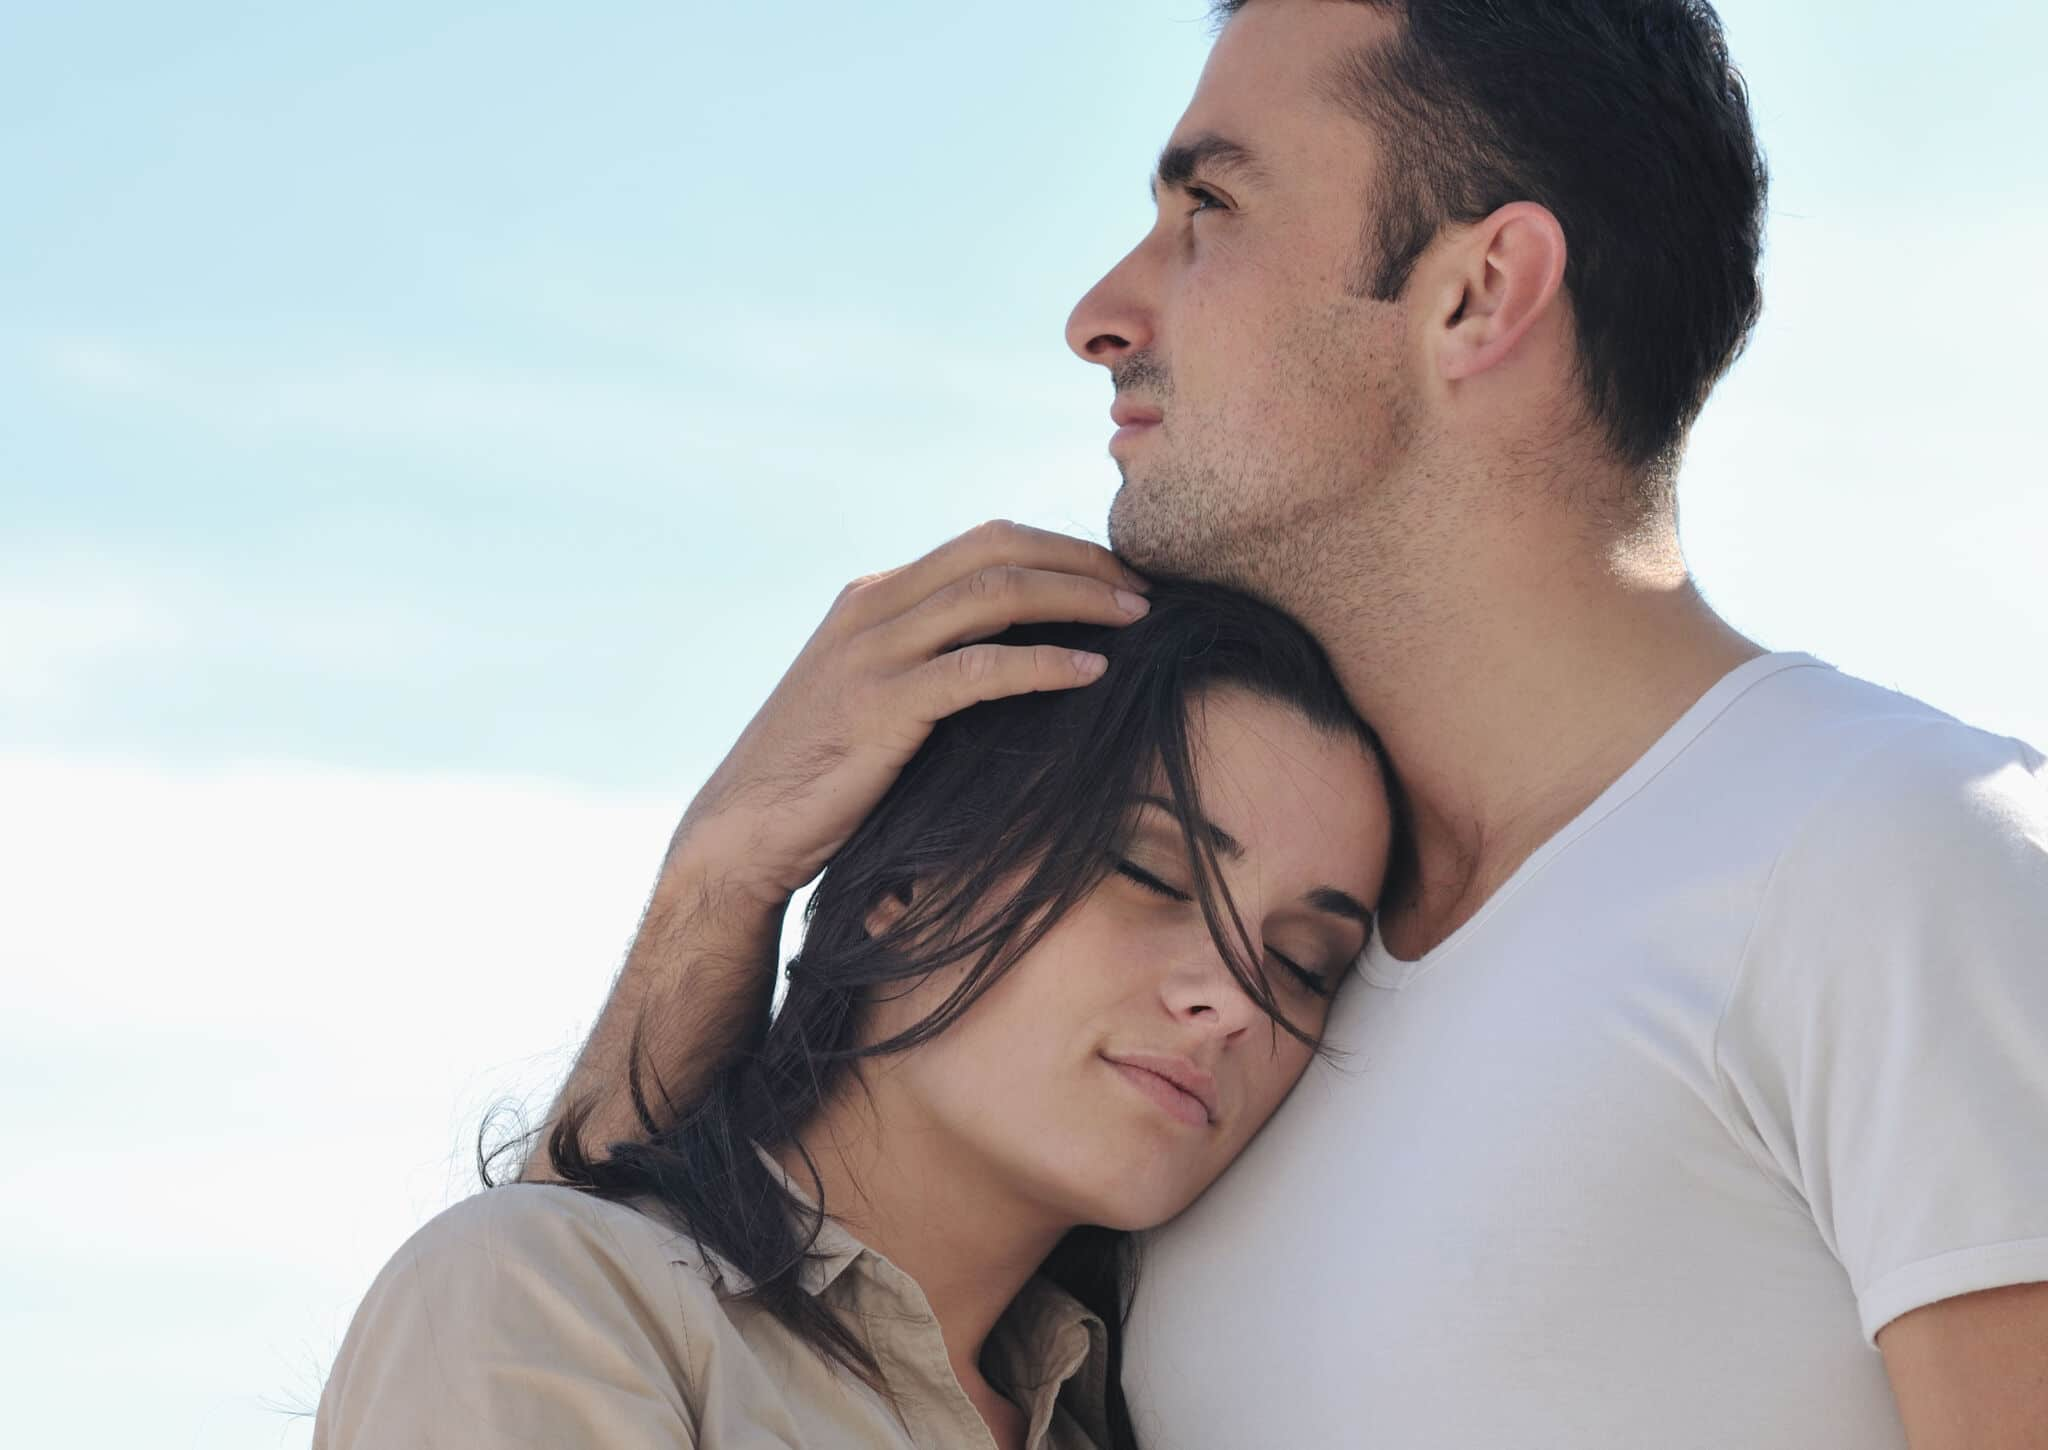 Masculine confidence save your marriage